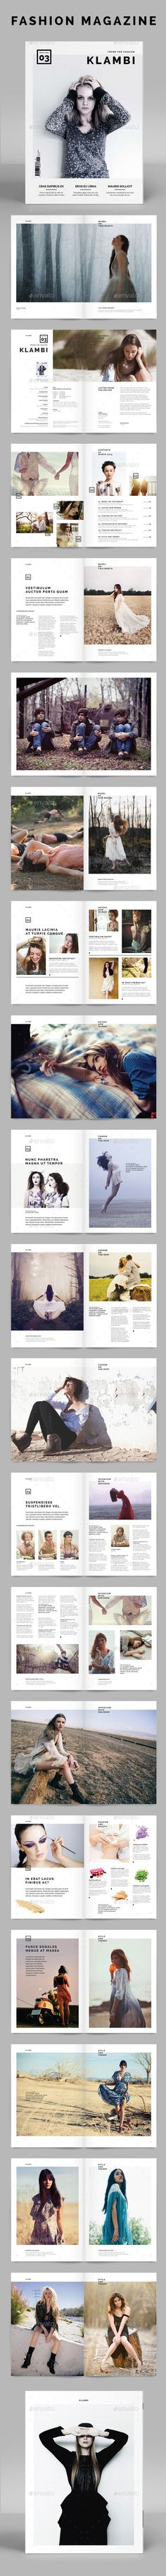 Ideas For Fashion Magazine Layout Design Editorial Graphic Design Magazine, Magazine Design Inspiration, Magazine Layout Design, Layout Inspiration, Graphic Design Inspiration, Ideas Magazine, Editorial Logo, Editorial Layout, Editorial Design